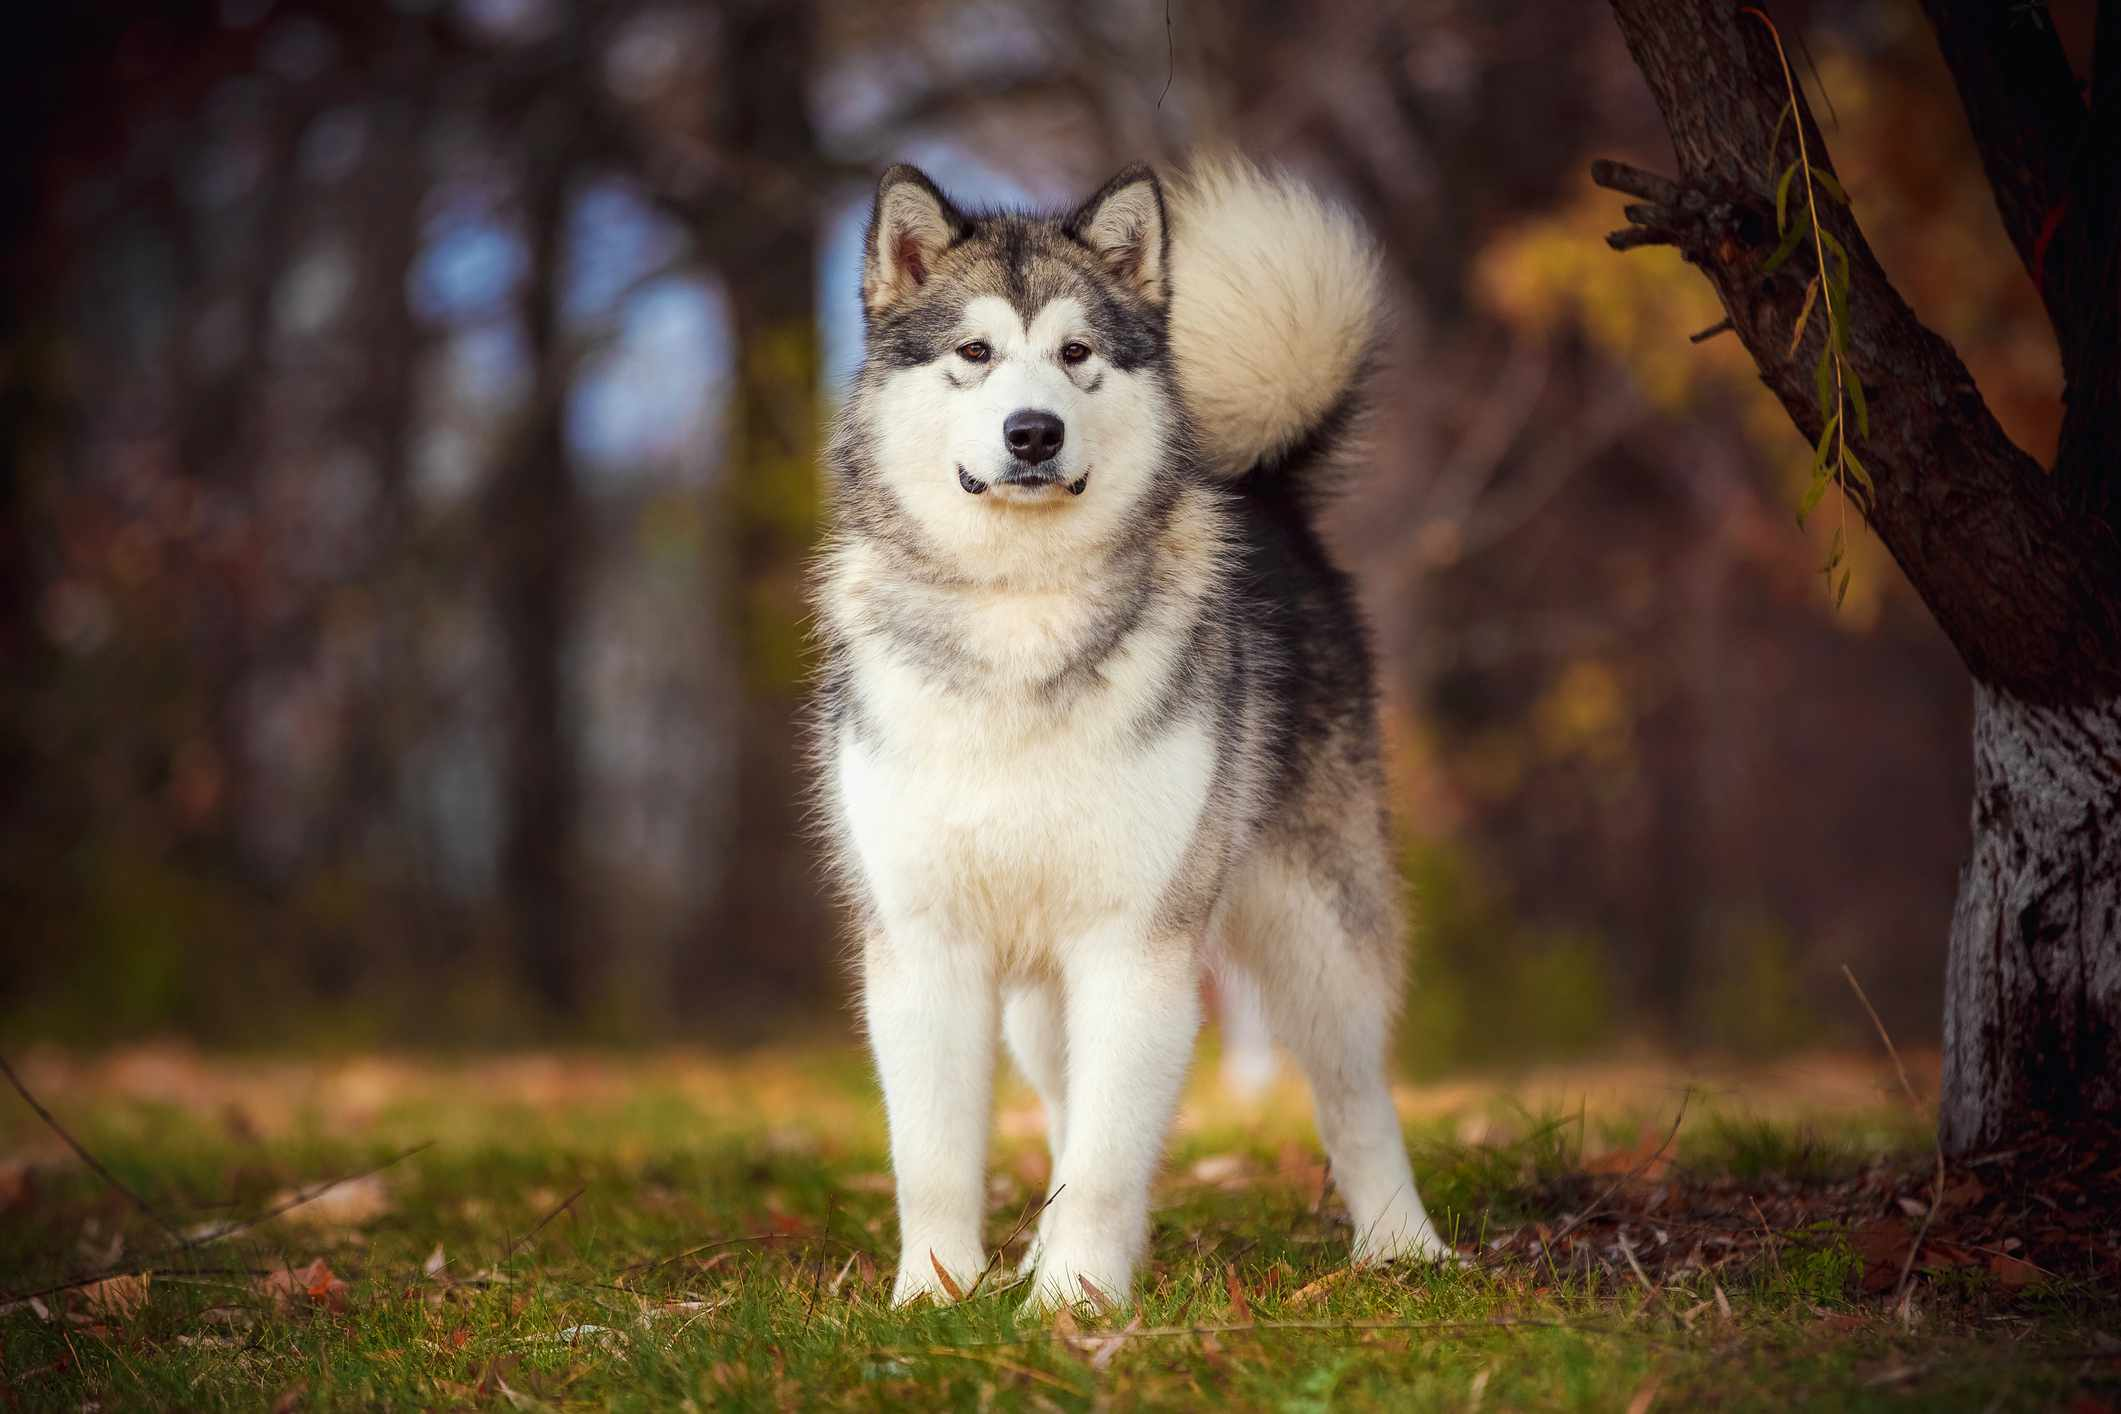 Alaskan malamute dog standing in grass